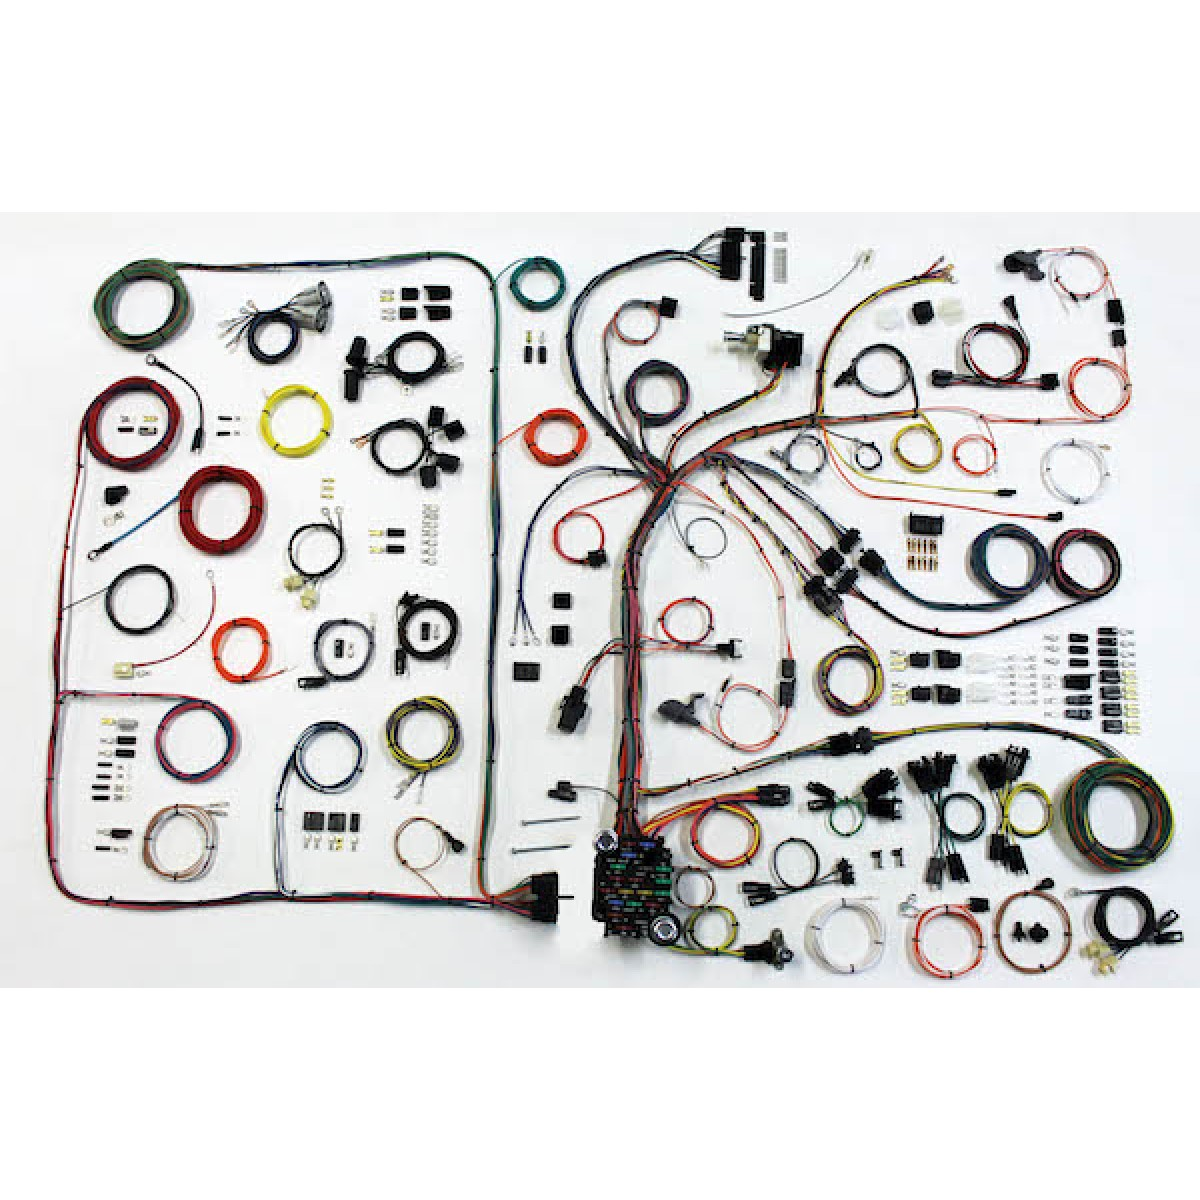 hight resolution of 1968 1972 pontiac gto complete wiring harness kit 1968 1972 1966 gto wiring harness gto wiring harness